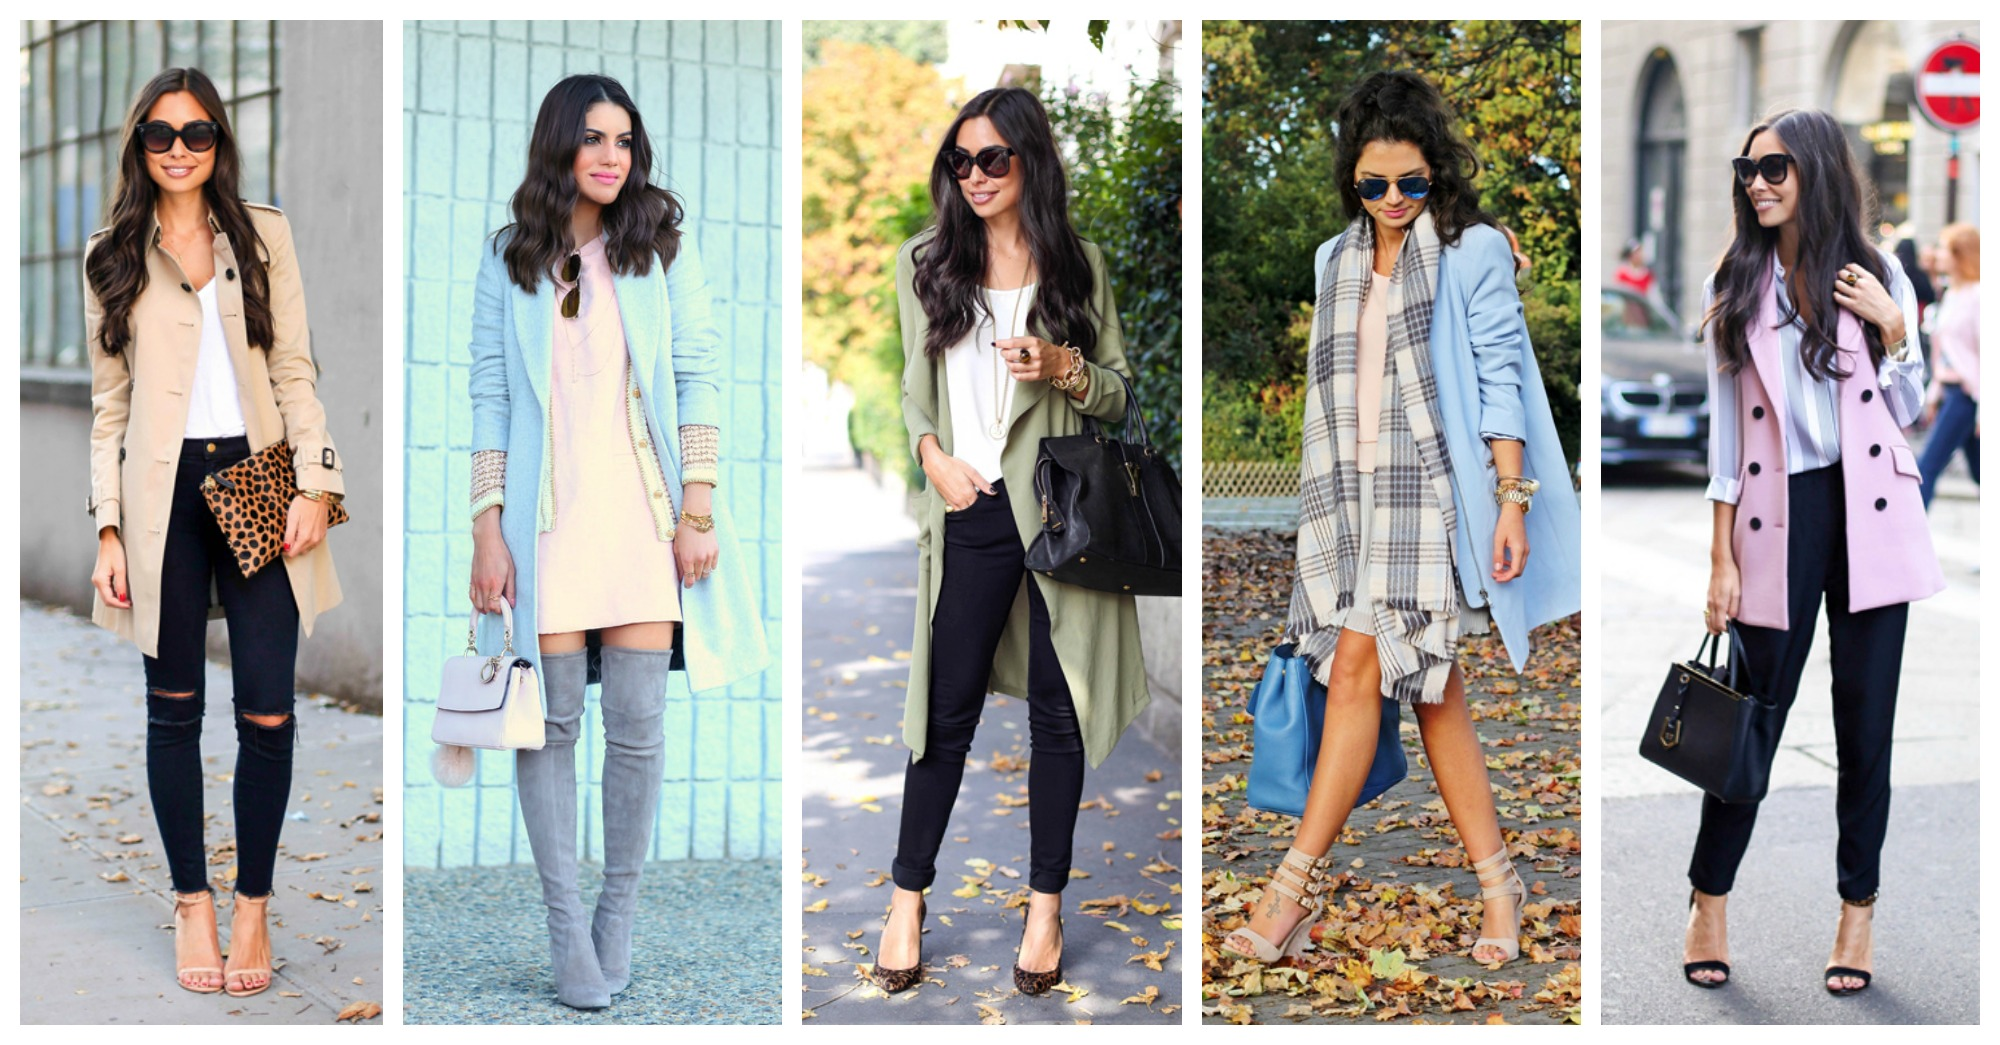 20 Lovely Ways to Wear Pastels In Fall